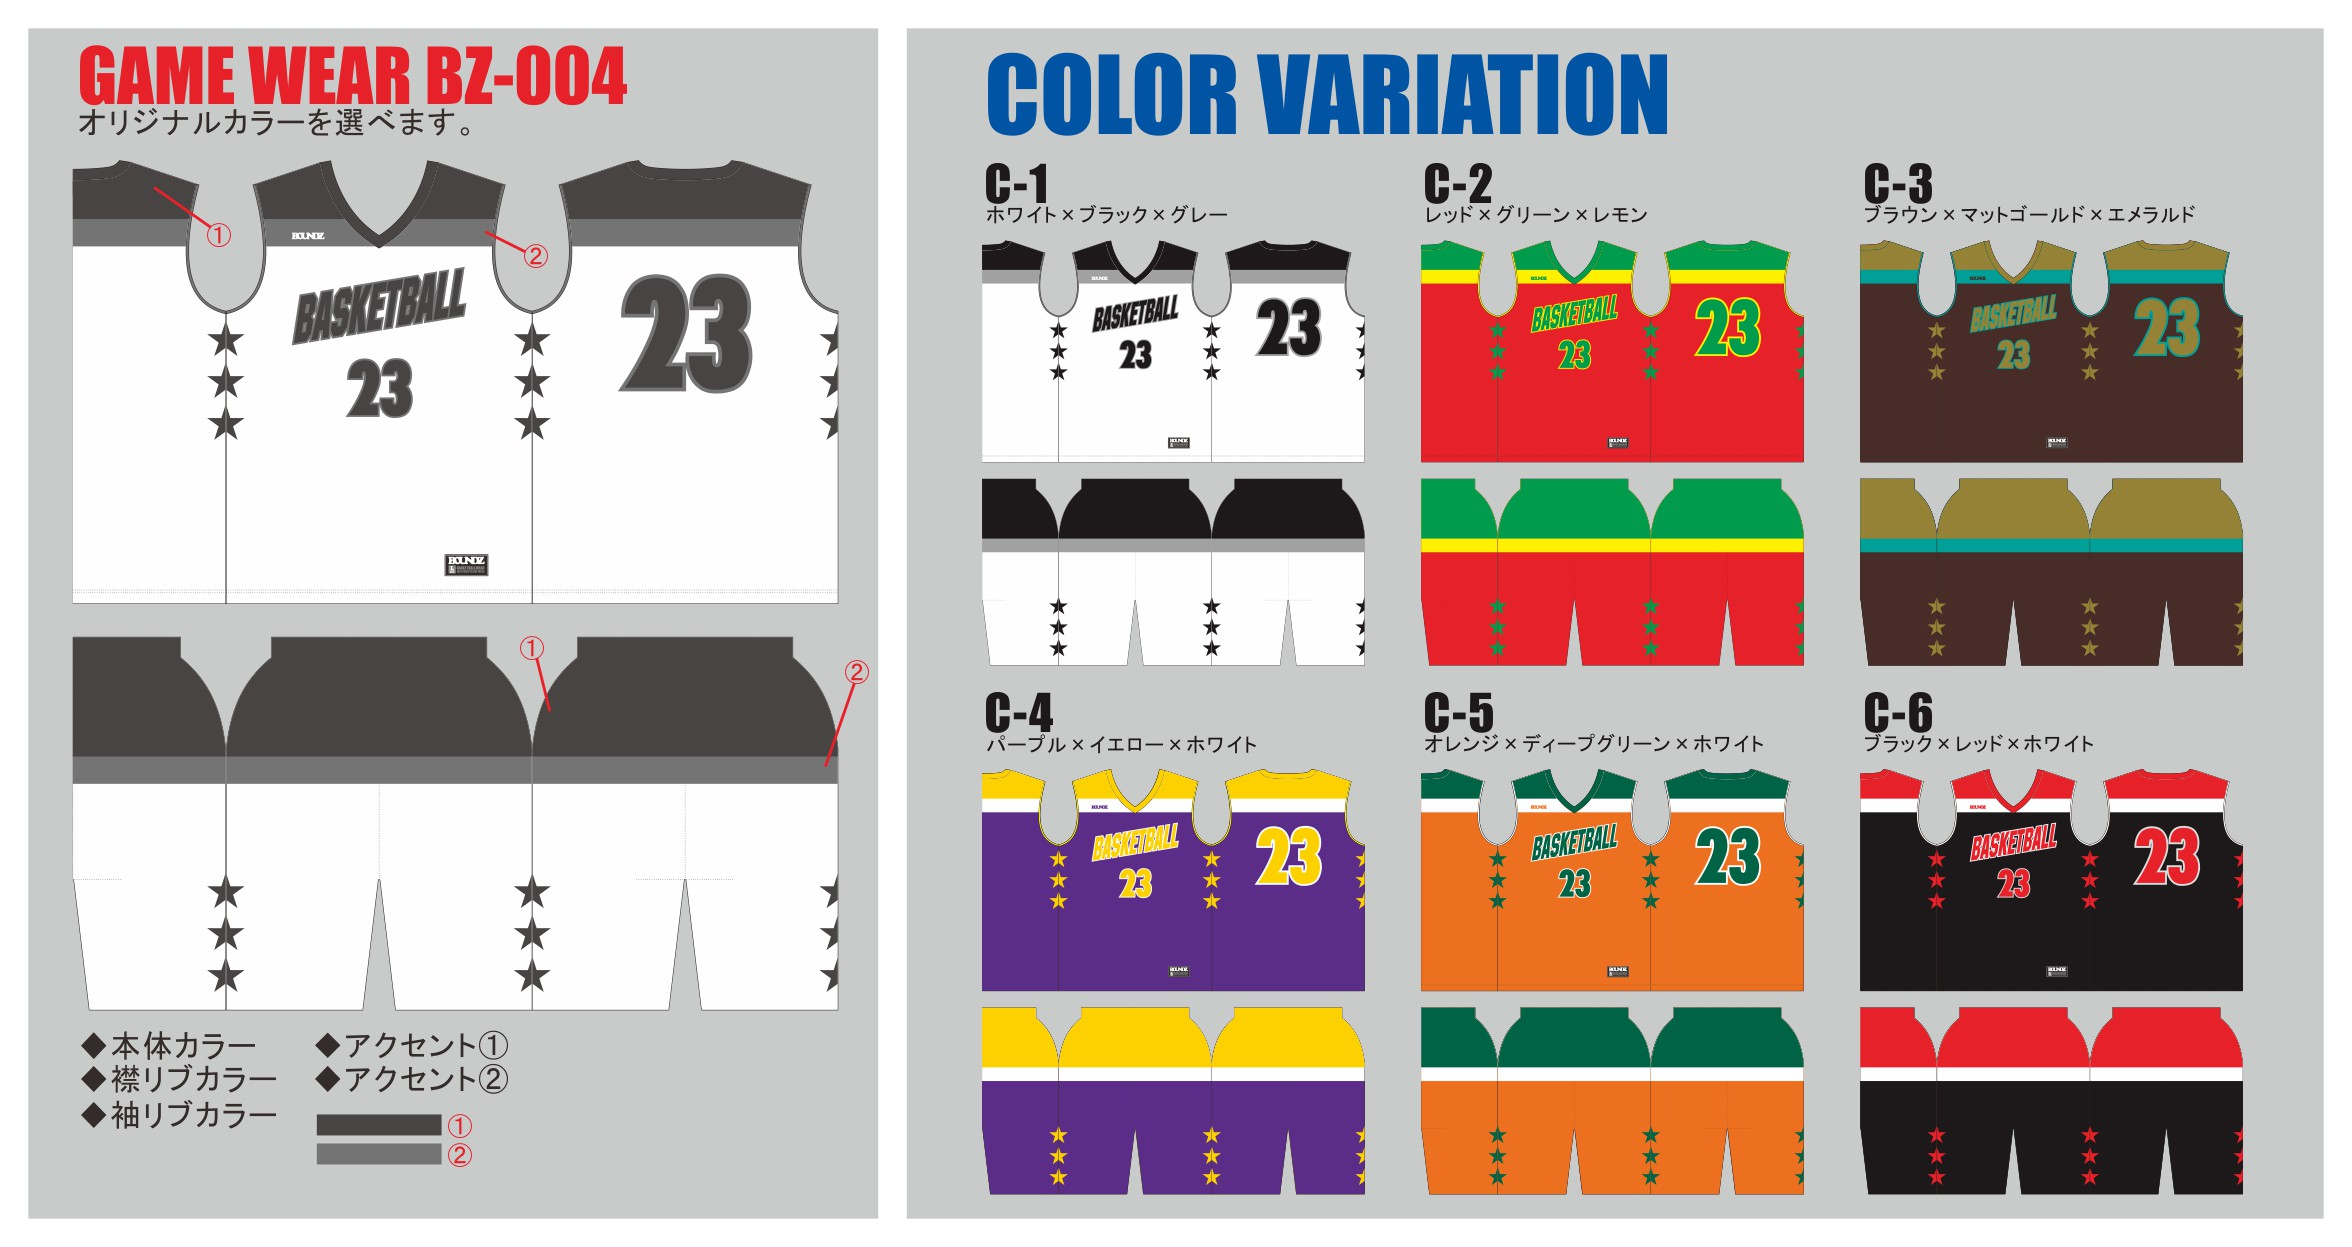 GAME_WEAR_BZ004_color